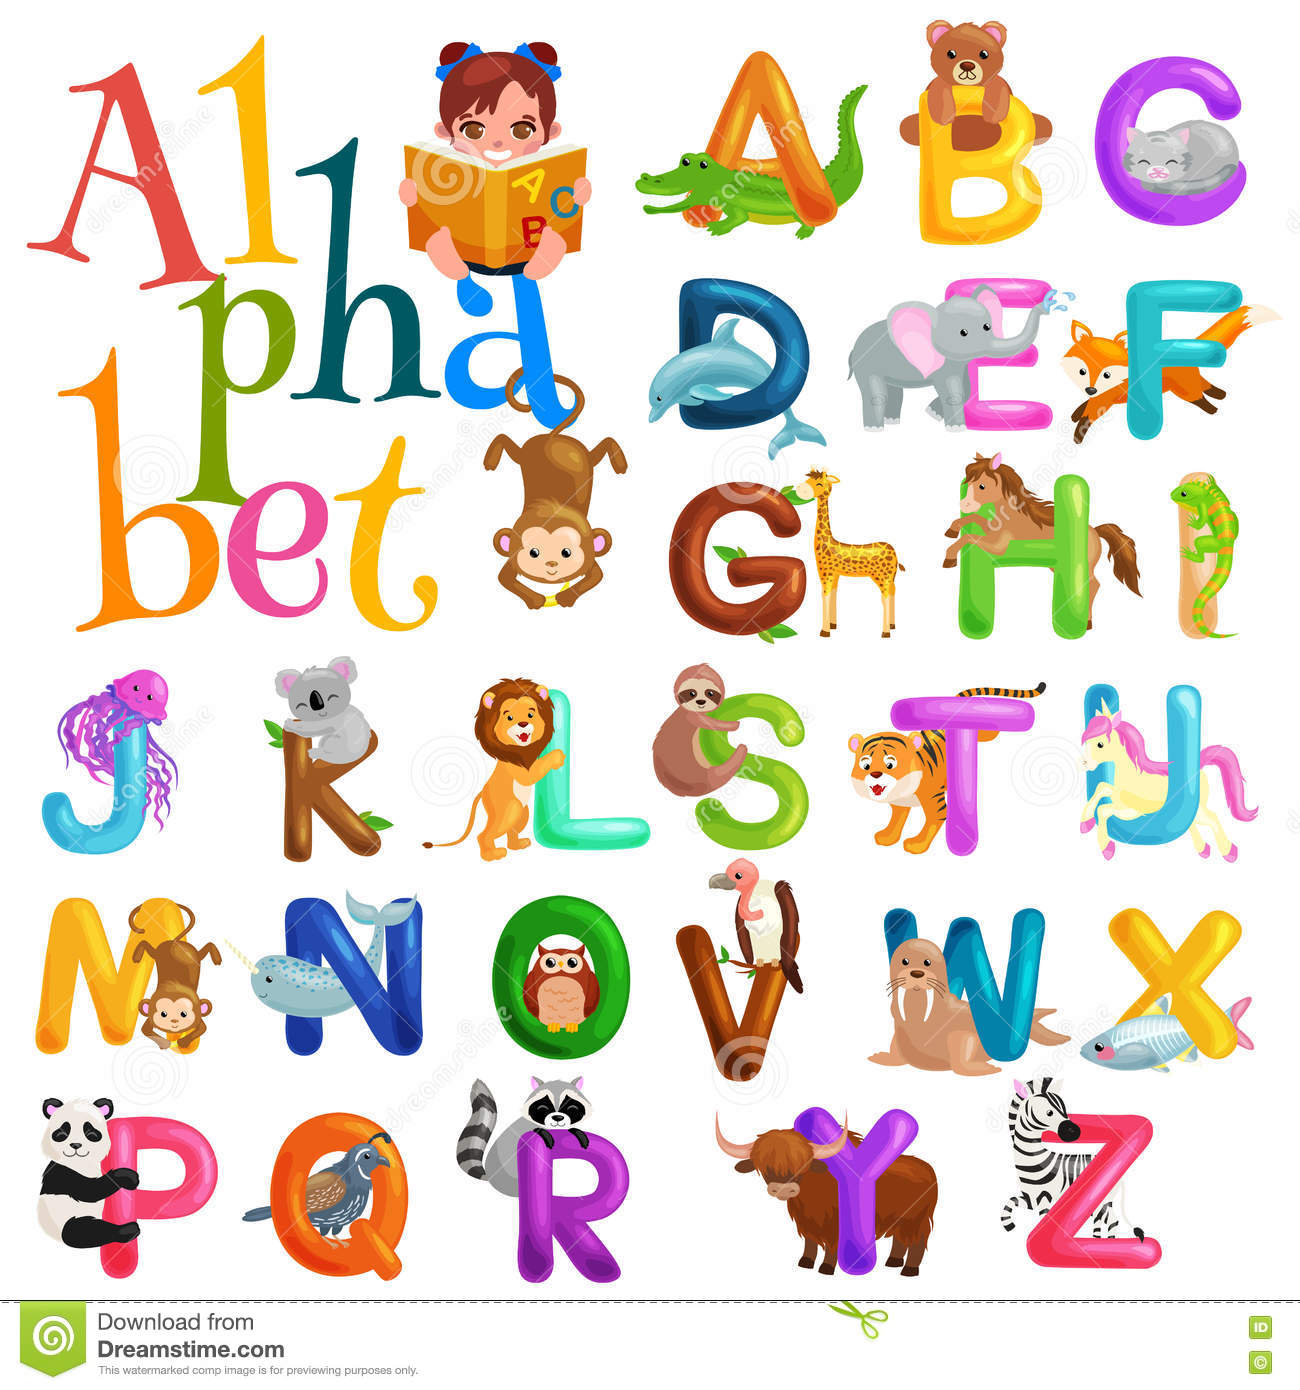 Preschool letters - Animals Alphabet Set For Kids Abc Education In Preschool Royalty Free Stock Images